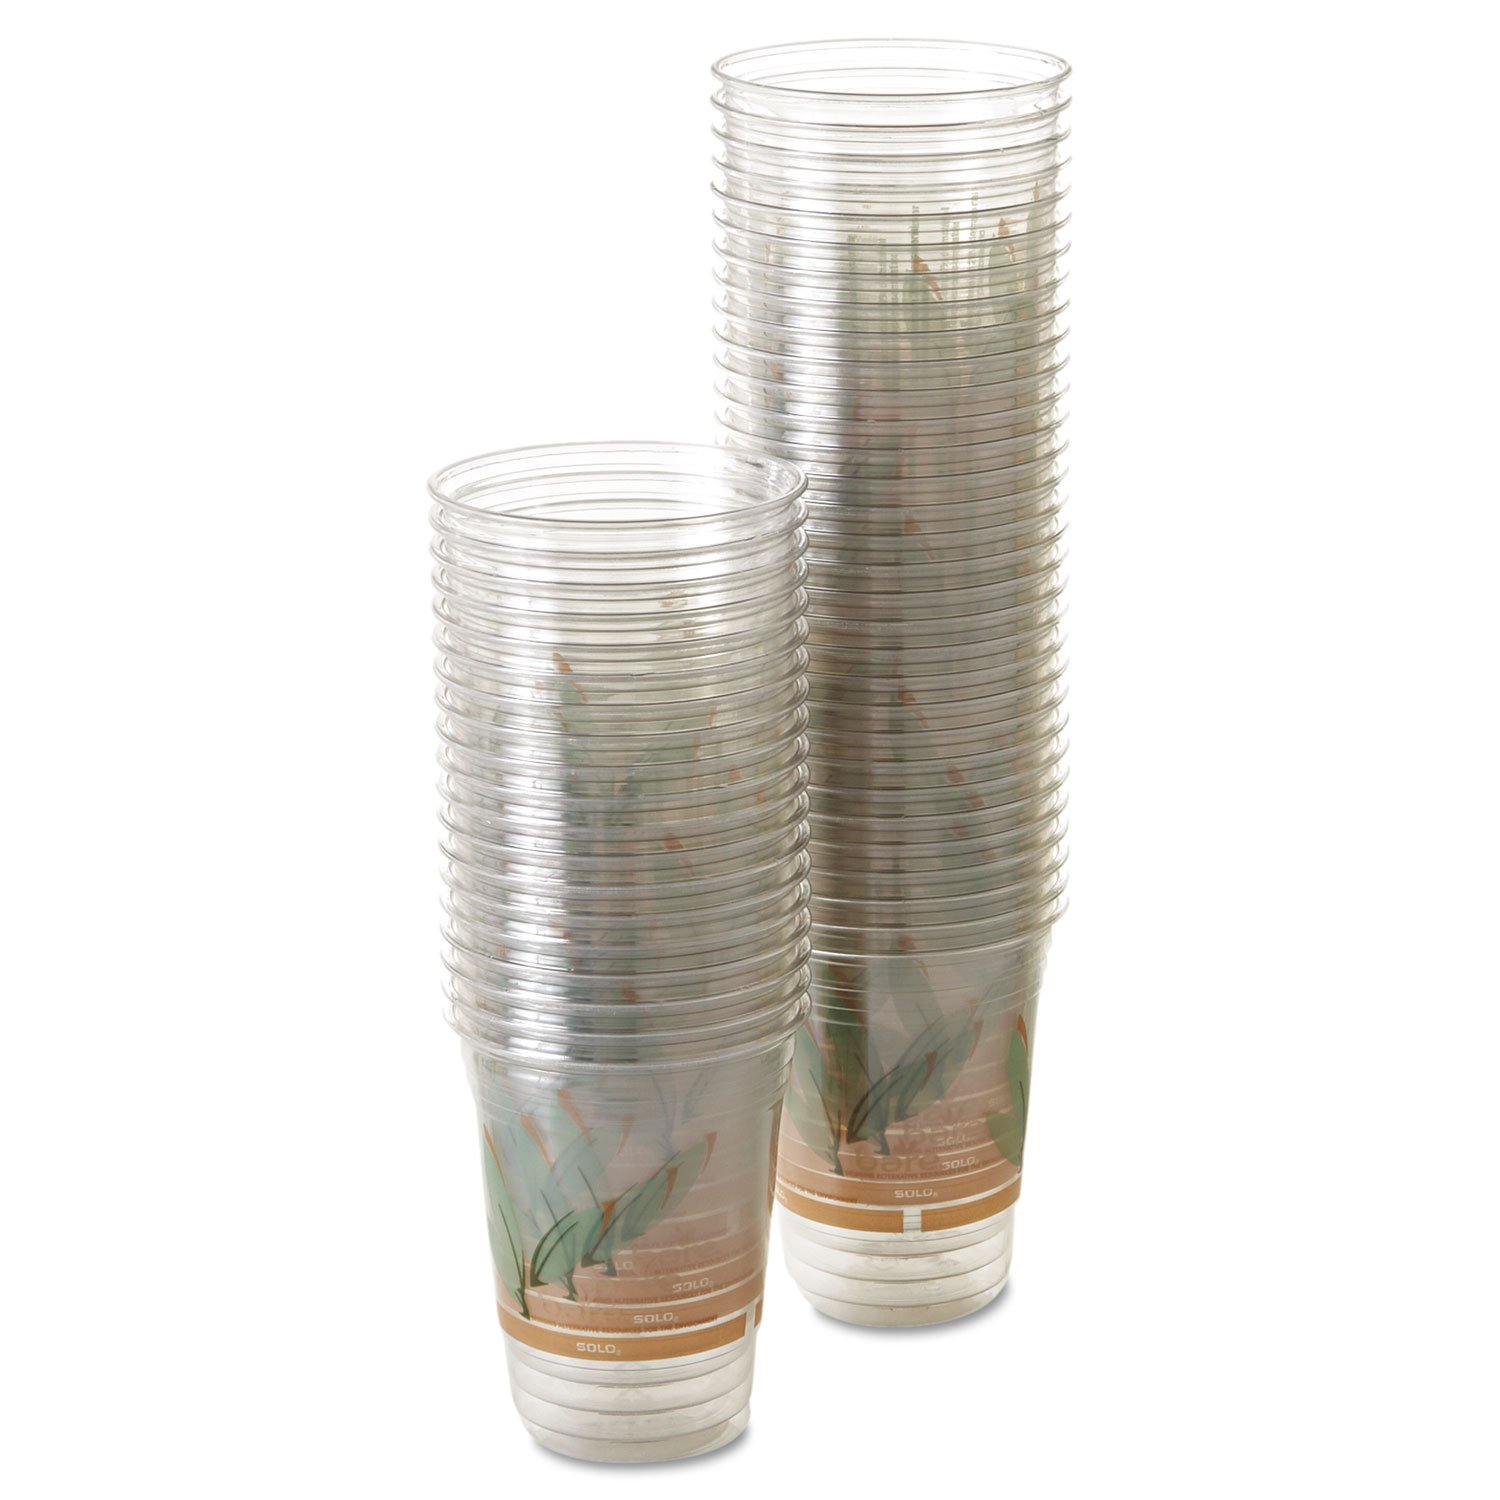 SOLO Cup Company RTP16DBARECT Bare Eco-Forward RPET Cold Cups, 16-18 Oz, Clear, Pack of 50 (Case of 1000)